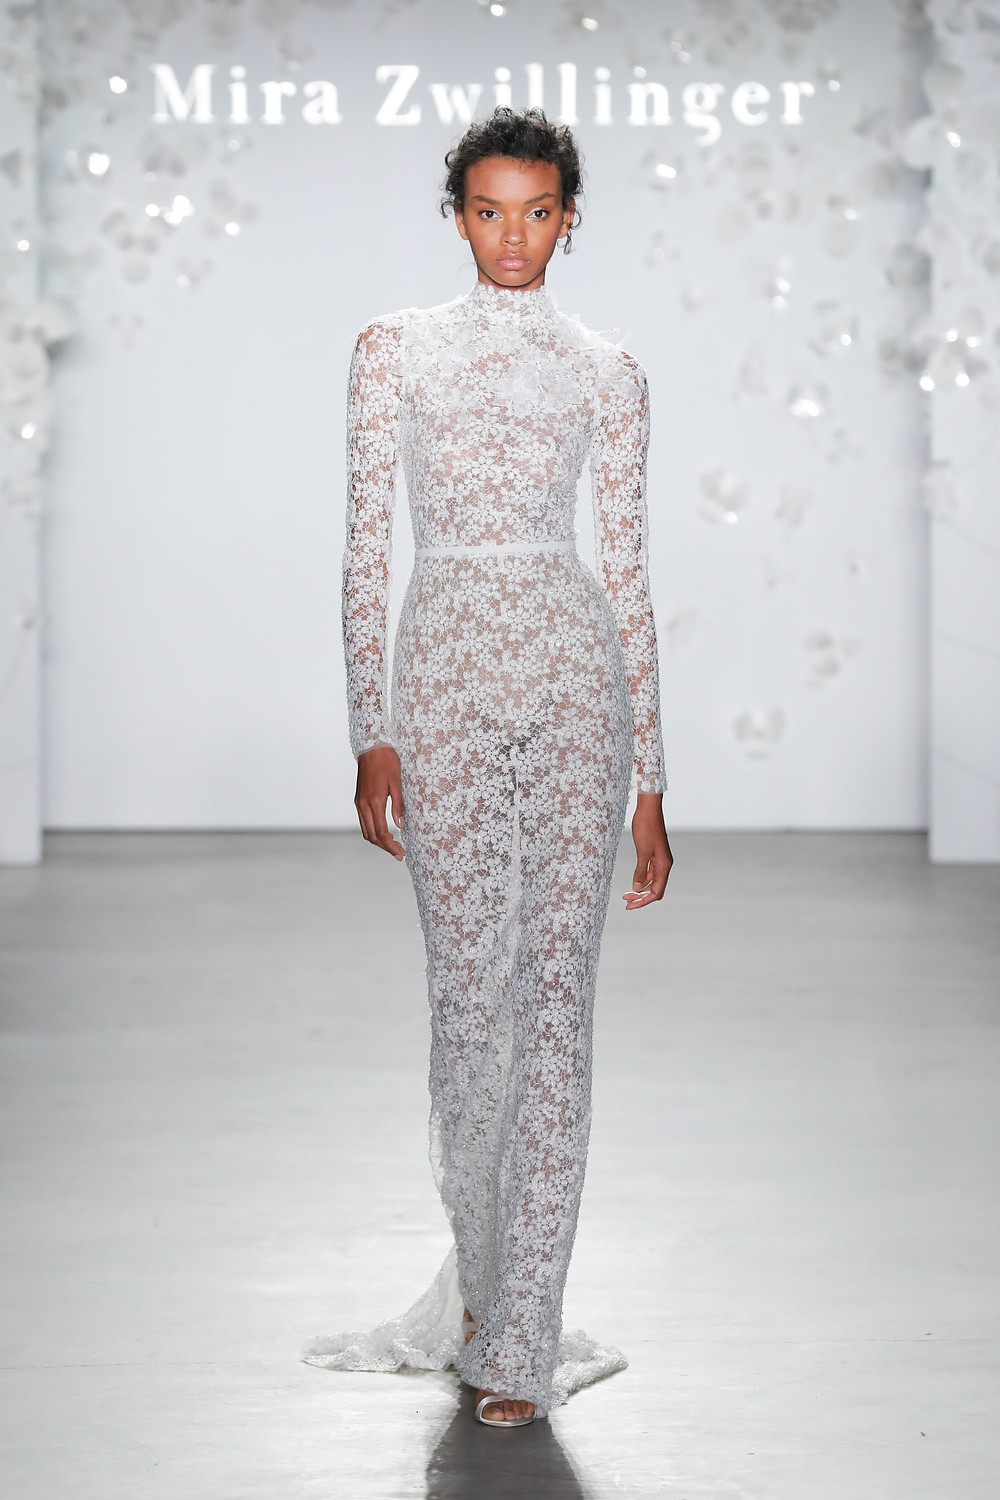 A Mira Zwillinger fitted lace wedding dress with long sleeves and a high neckline